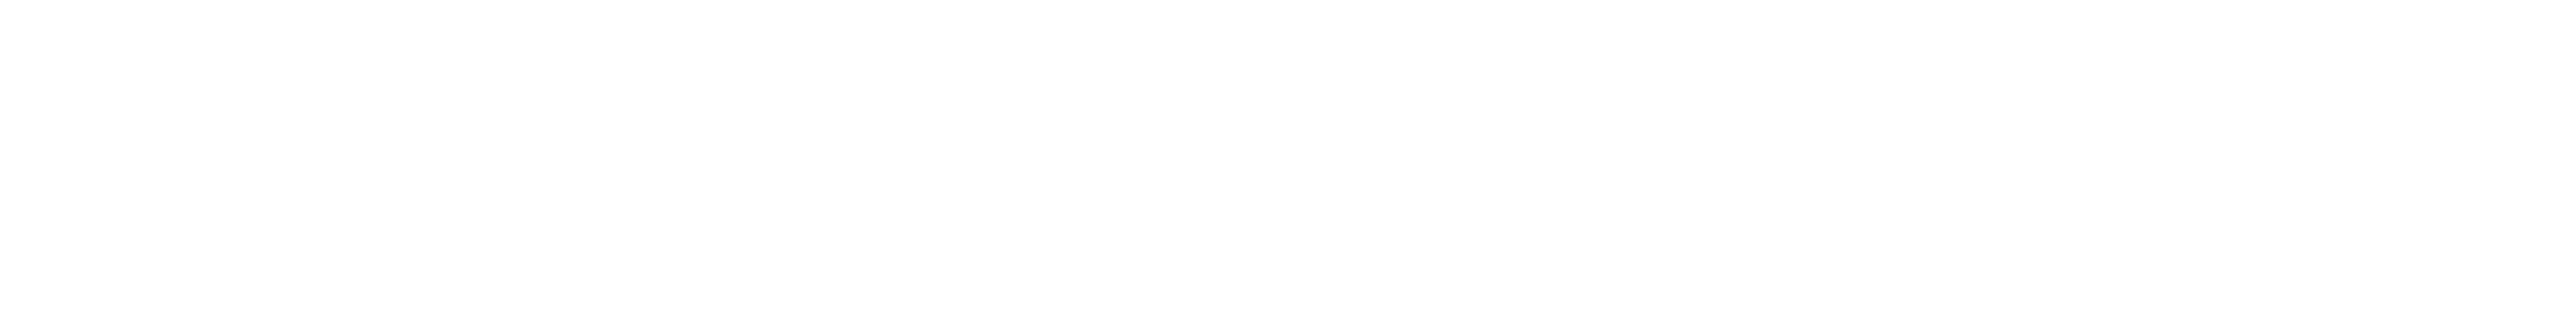 Cleeng logo - white without tagline